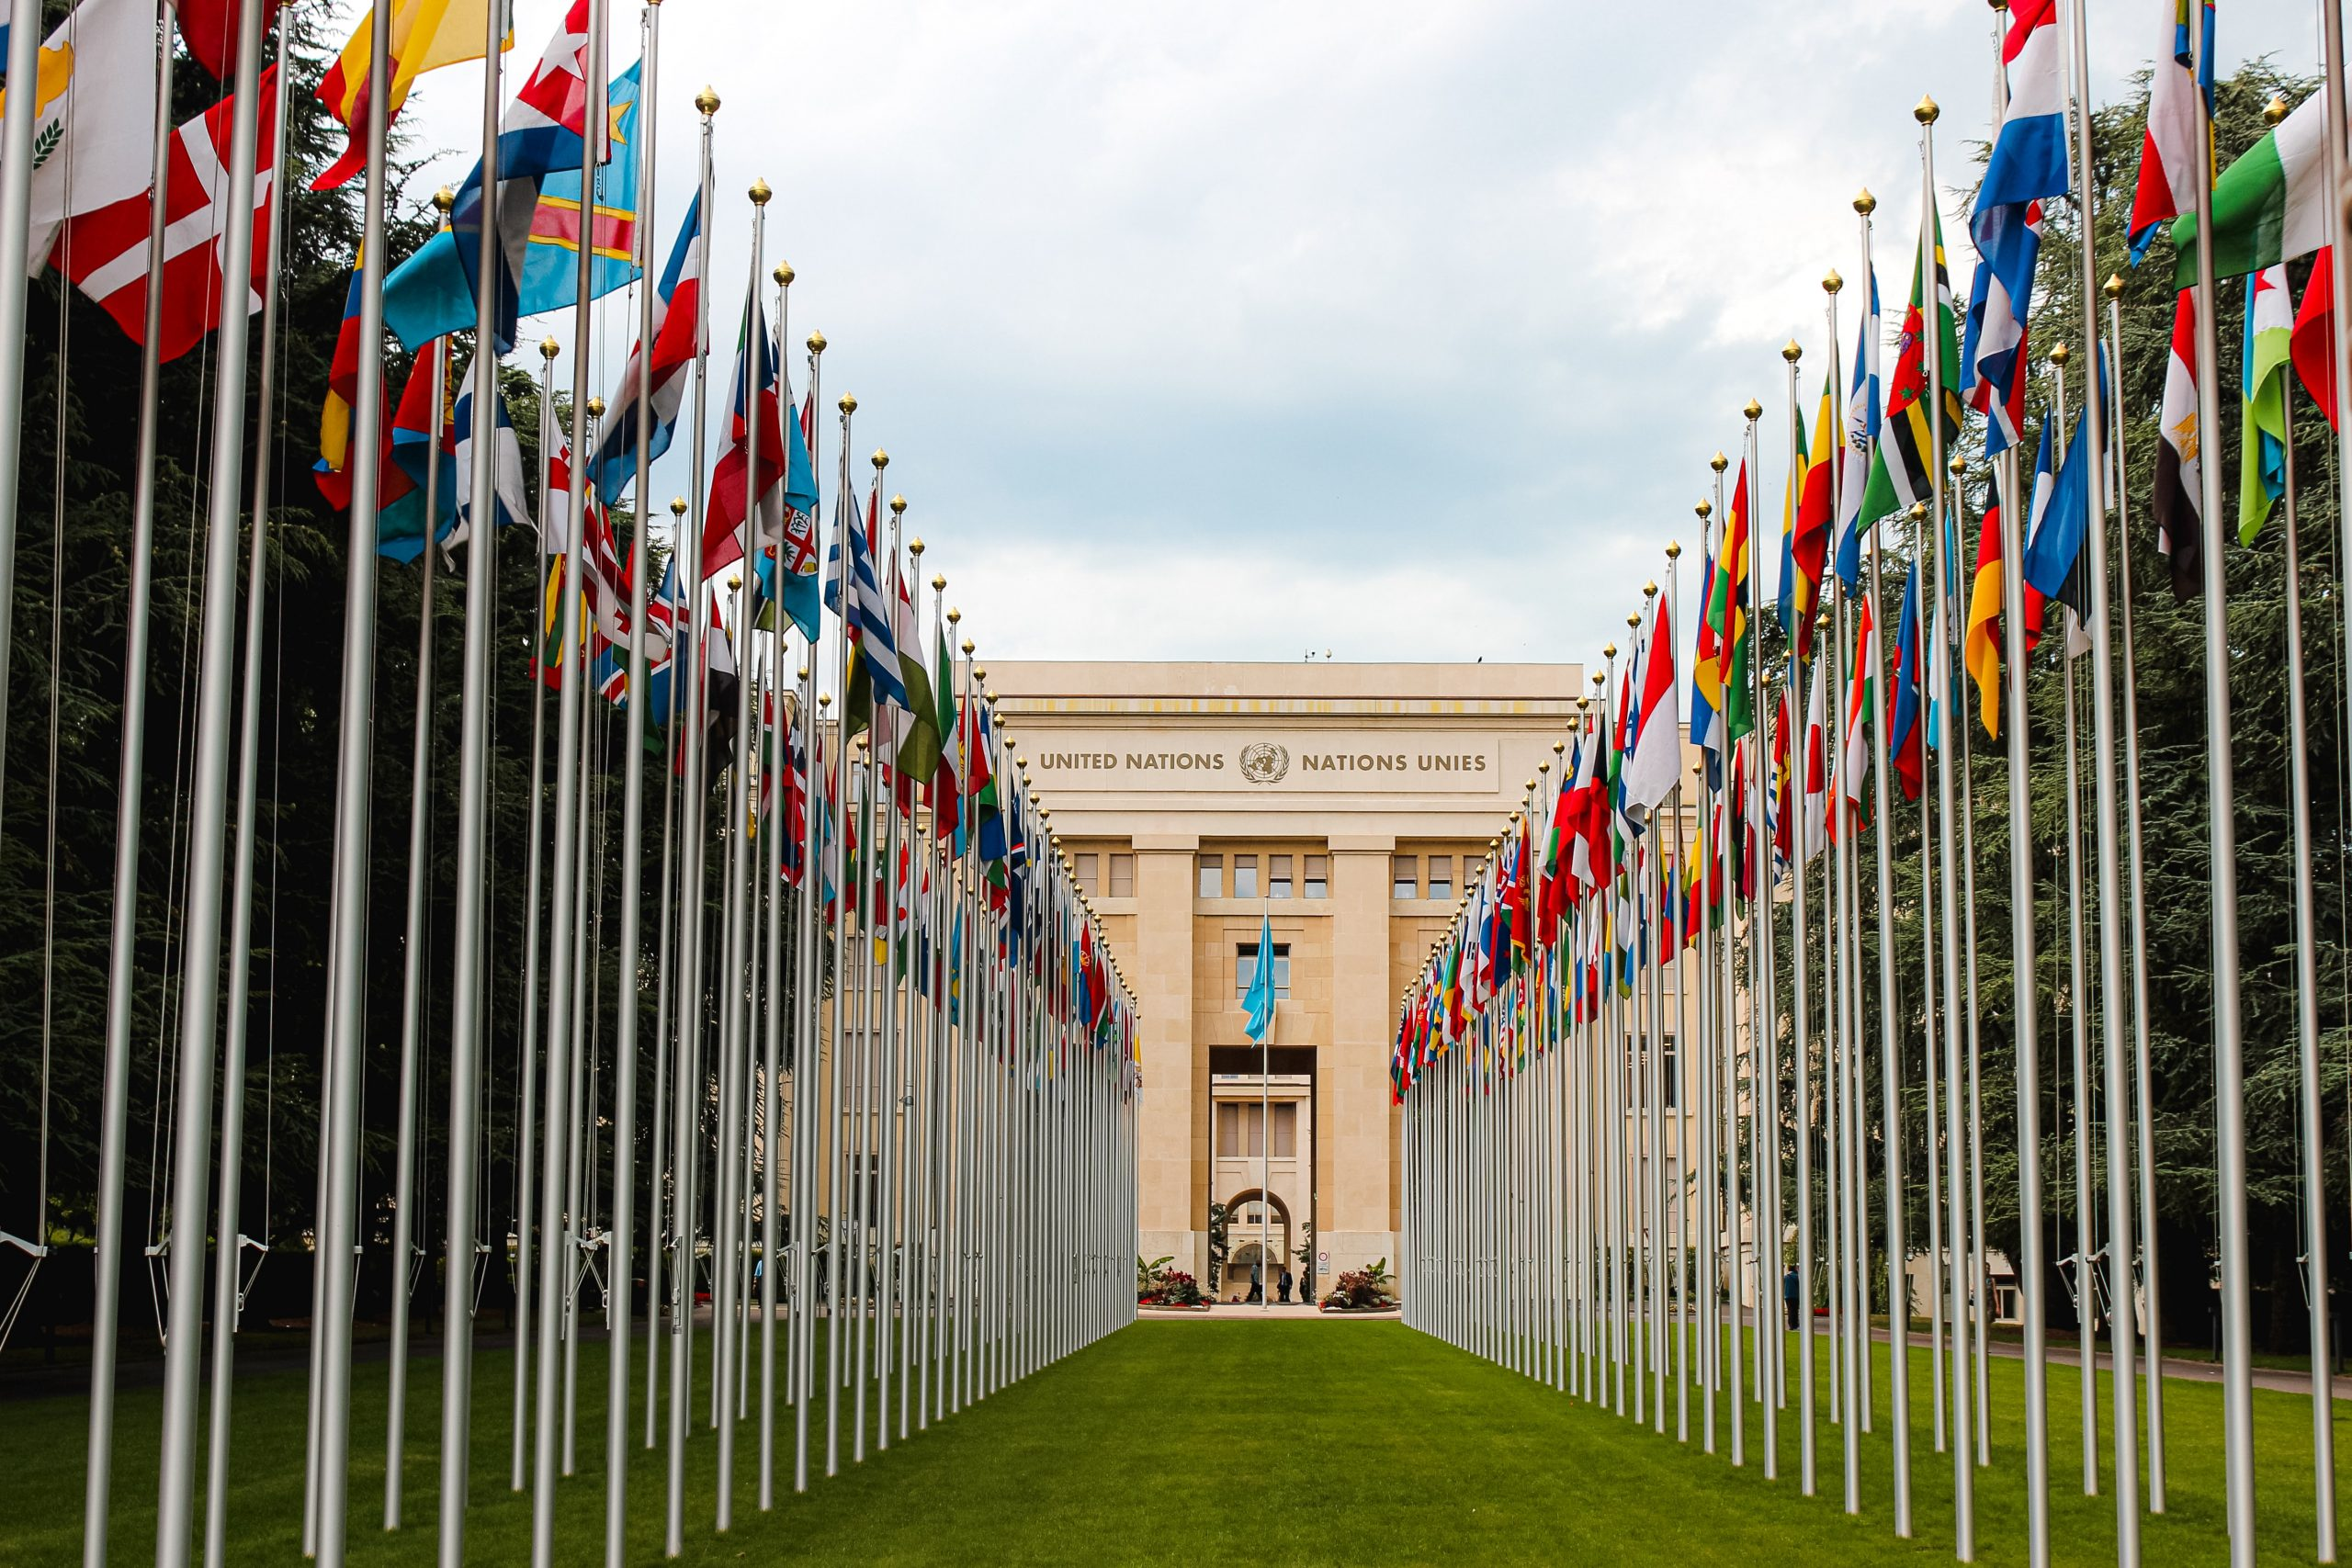 A shot looks down an aisle of flags onto the UN building.